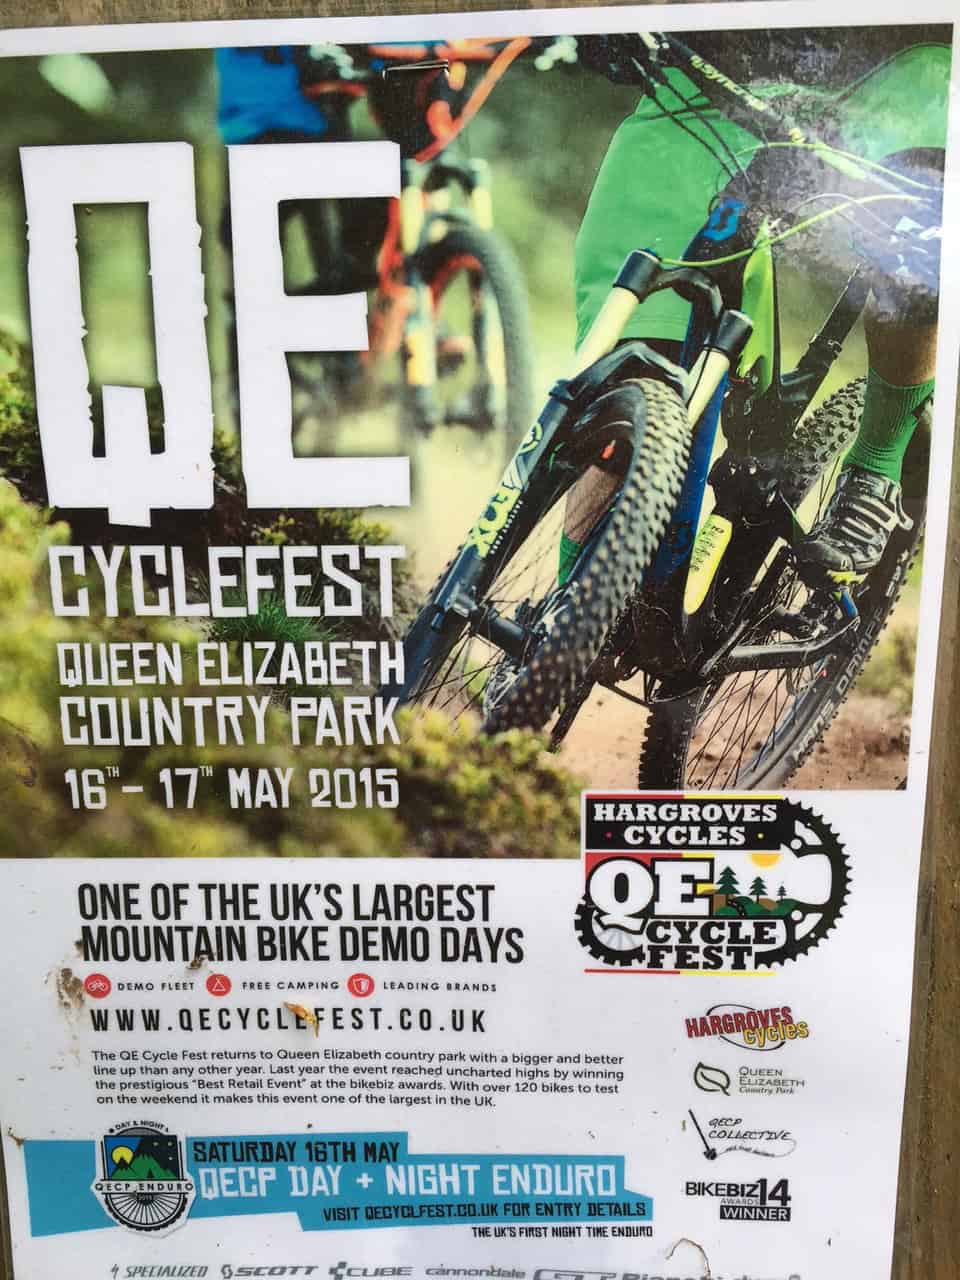 QE Cycle Fest